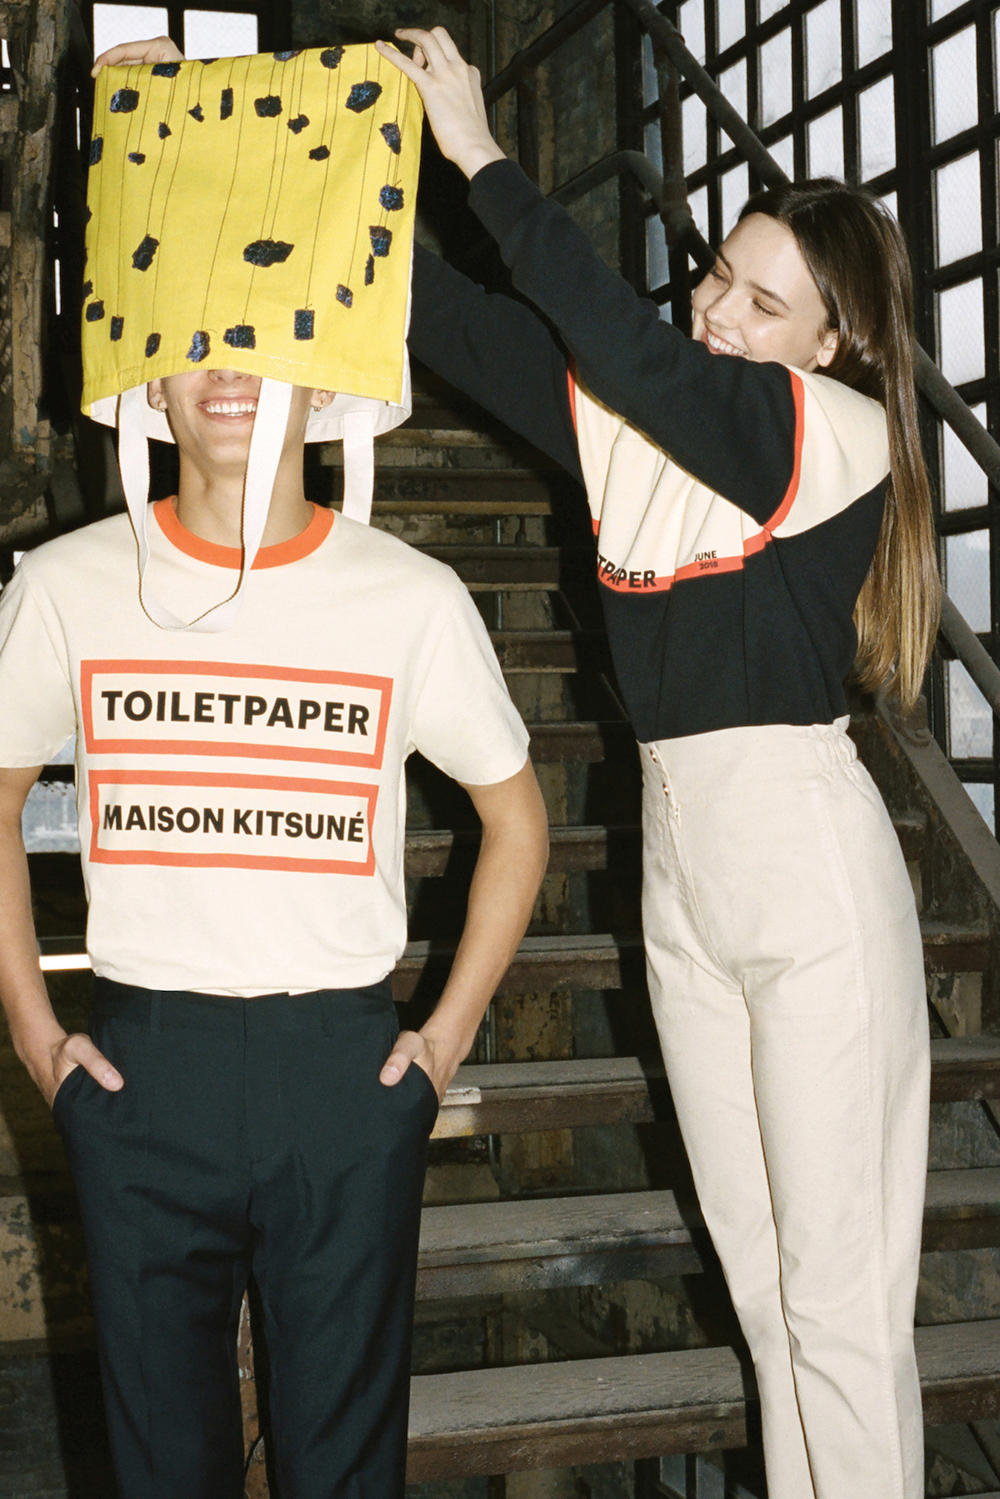 Maison Kitsune x Toilet Paper Collaboration Fashion Lookbook Magazine Editorial Bold Prints Science Graphic Motif